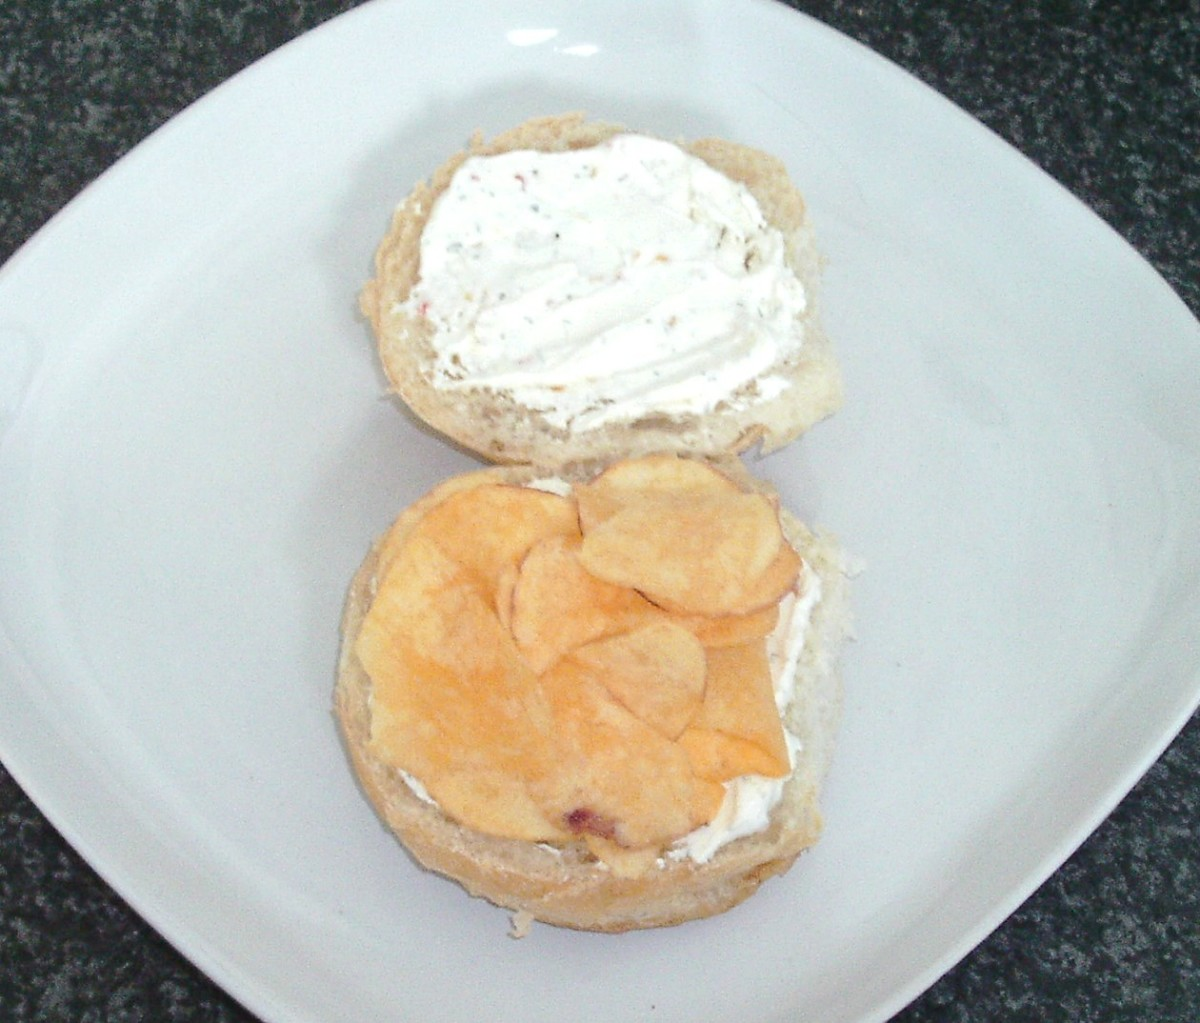 Cheese and onion crisps are added to roll